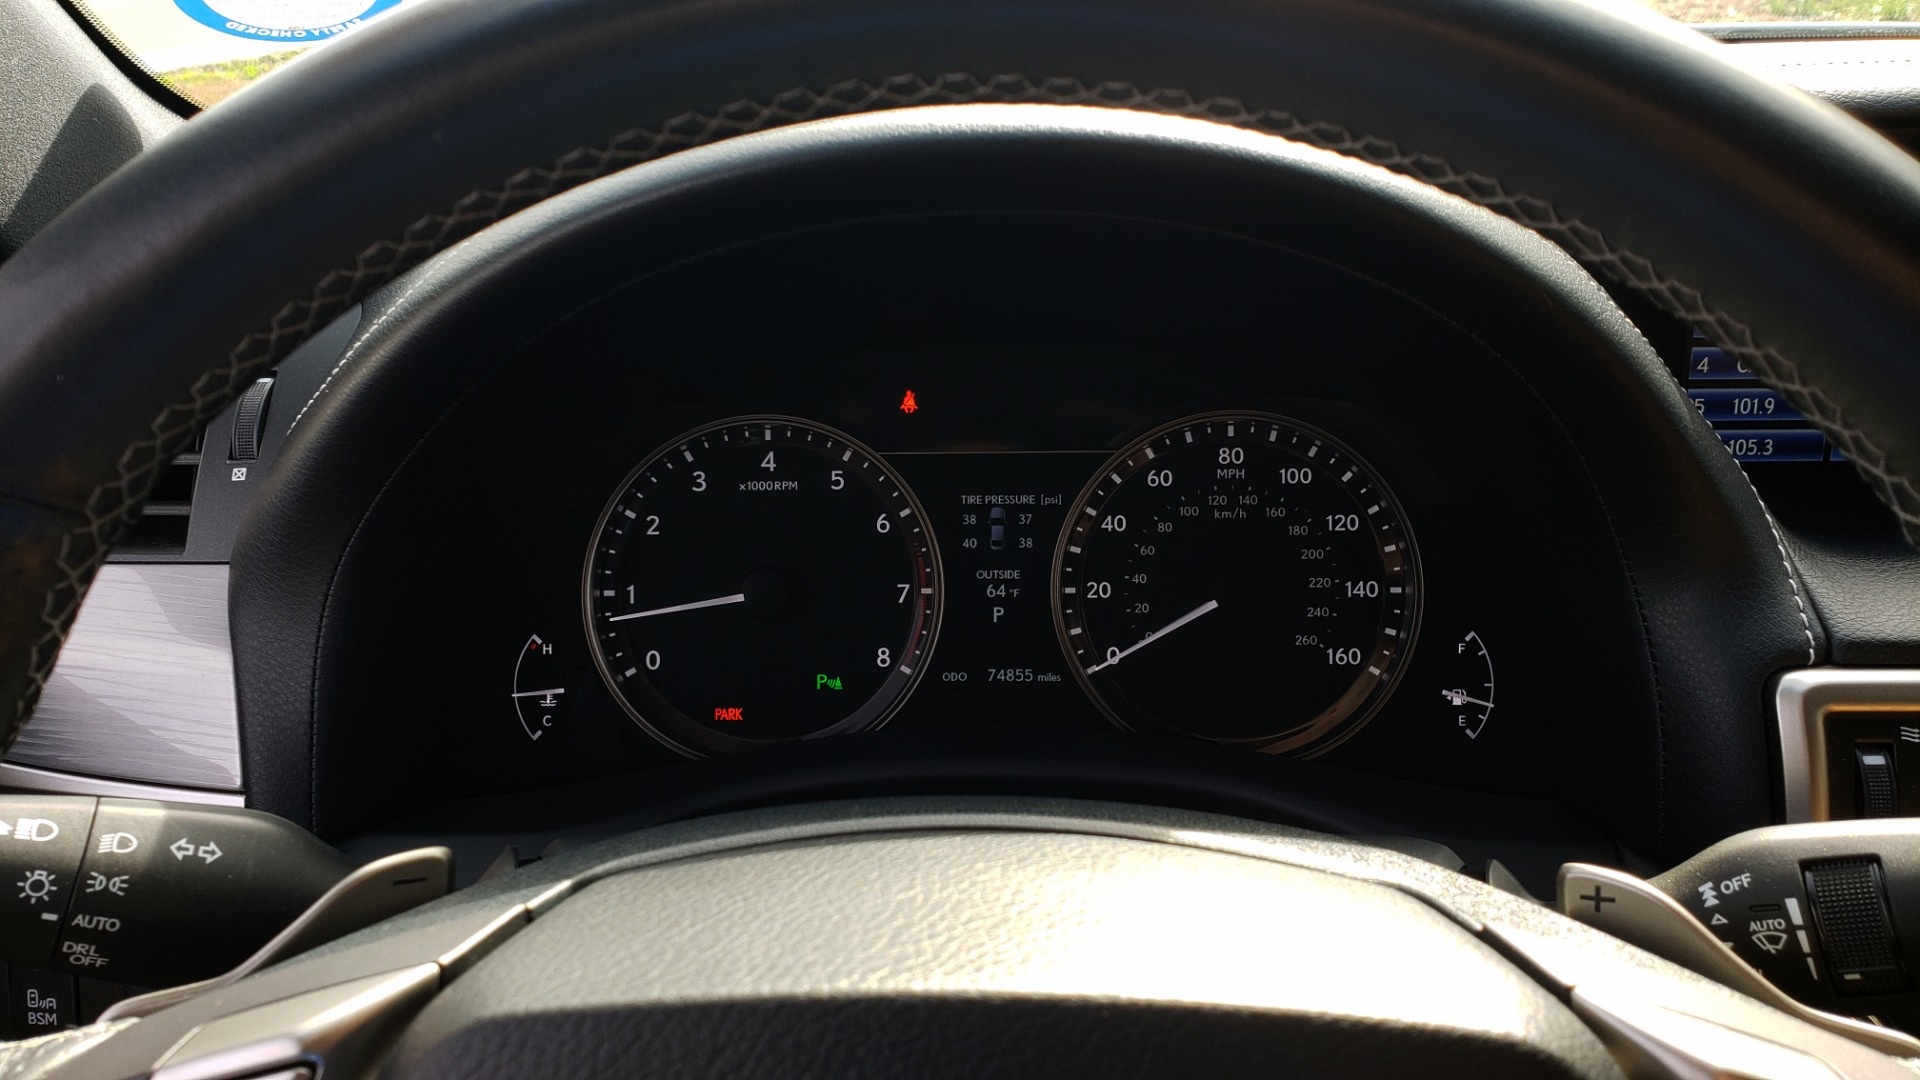 Used 2013 Lexus GS 350 F-SPORT / NAV / SUNROOF / BSM / PRK ASST / REARVIEW for sale Sold at Formula Imports in Charlotte NC 28227 37